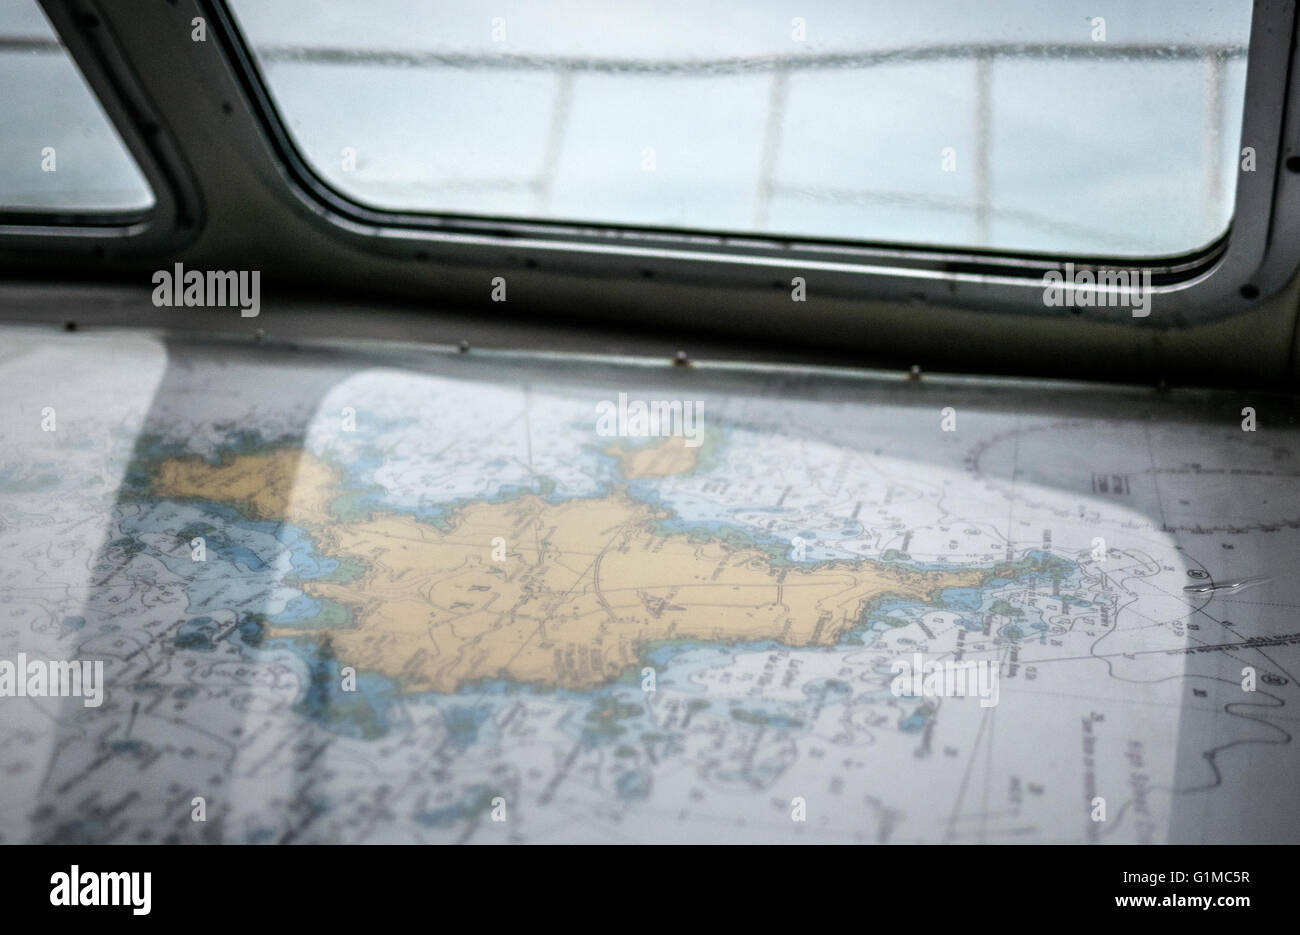 Close up photos of a shipping navigation map / chart of an island on a yacht sailing the sea. - Stock Image